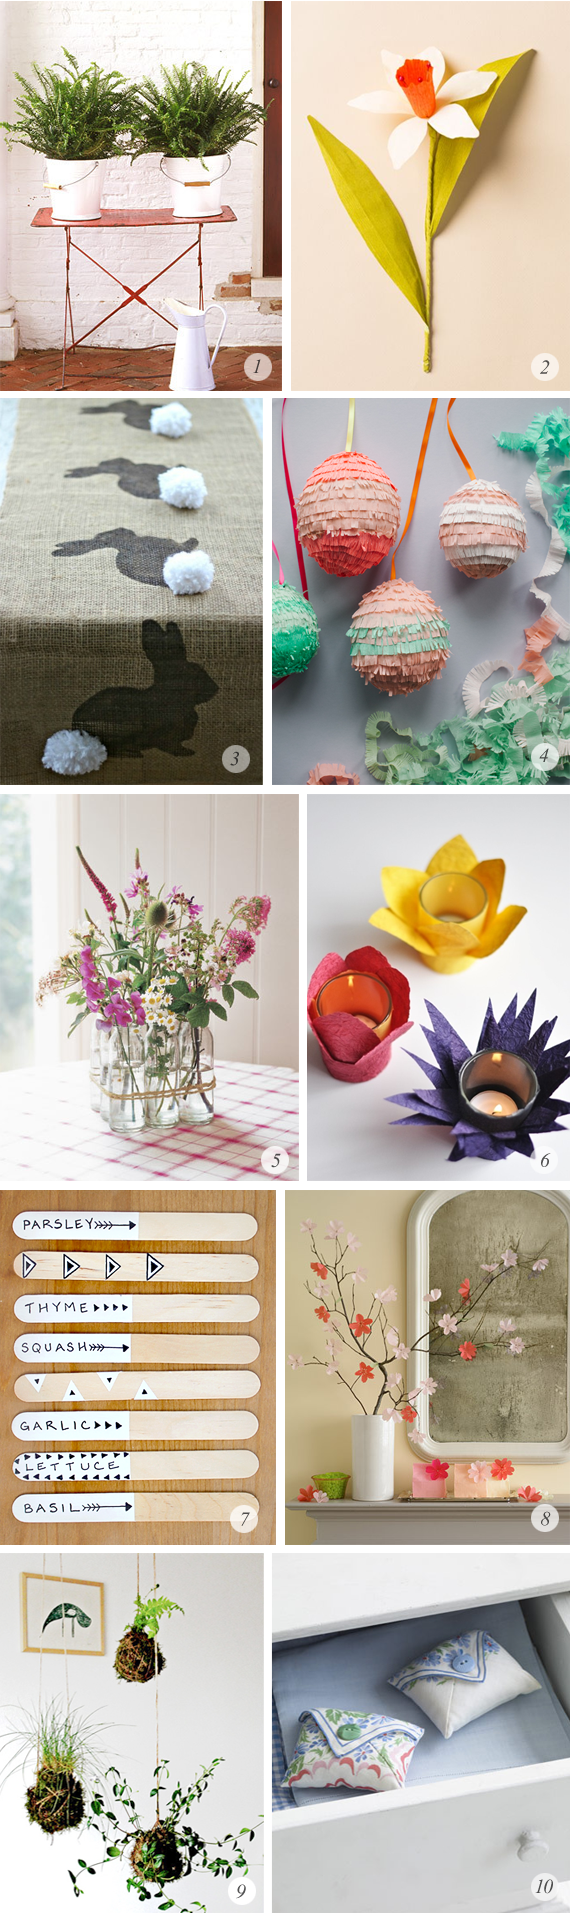 10 Great Spring Inspired DIY Projects // Bubby and Bean